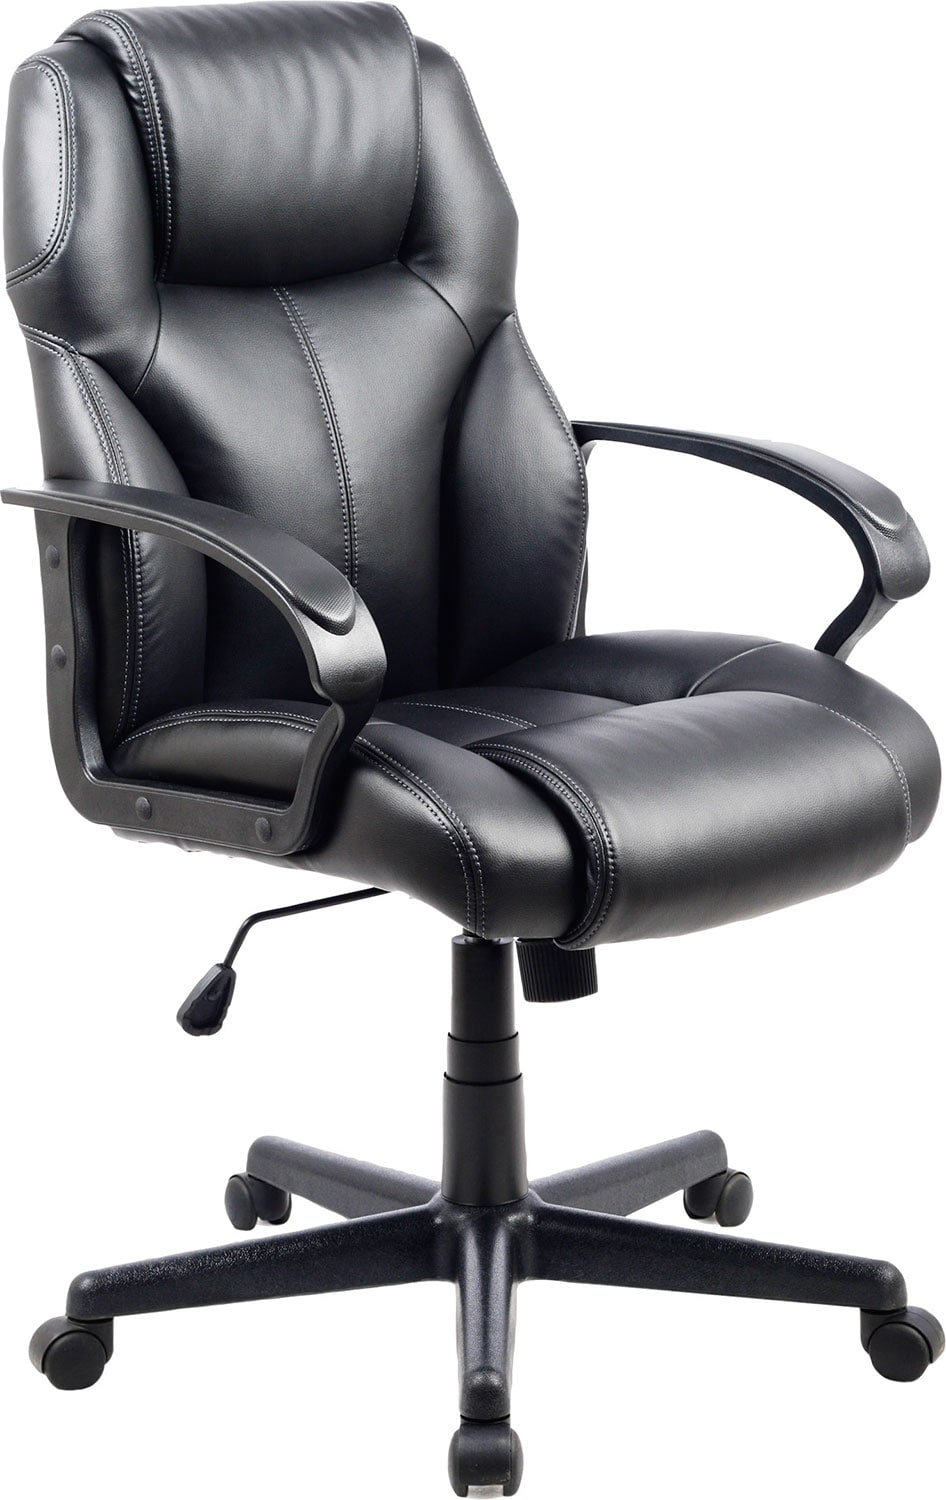 Home Office Furniture - Delson Black Foam-Padded Executive Office Chair